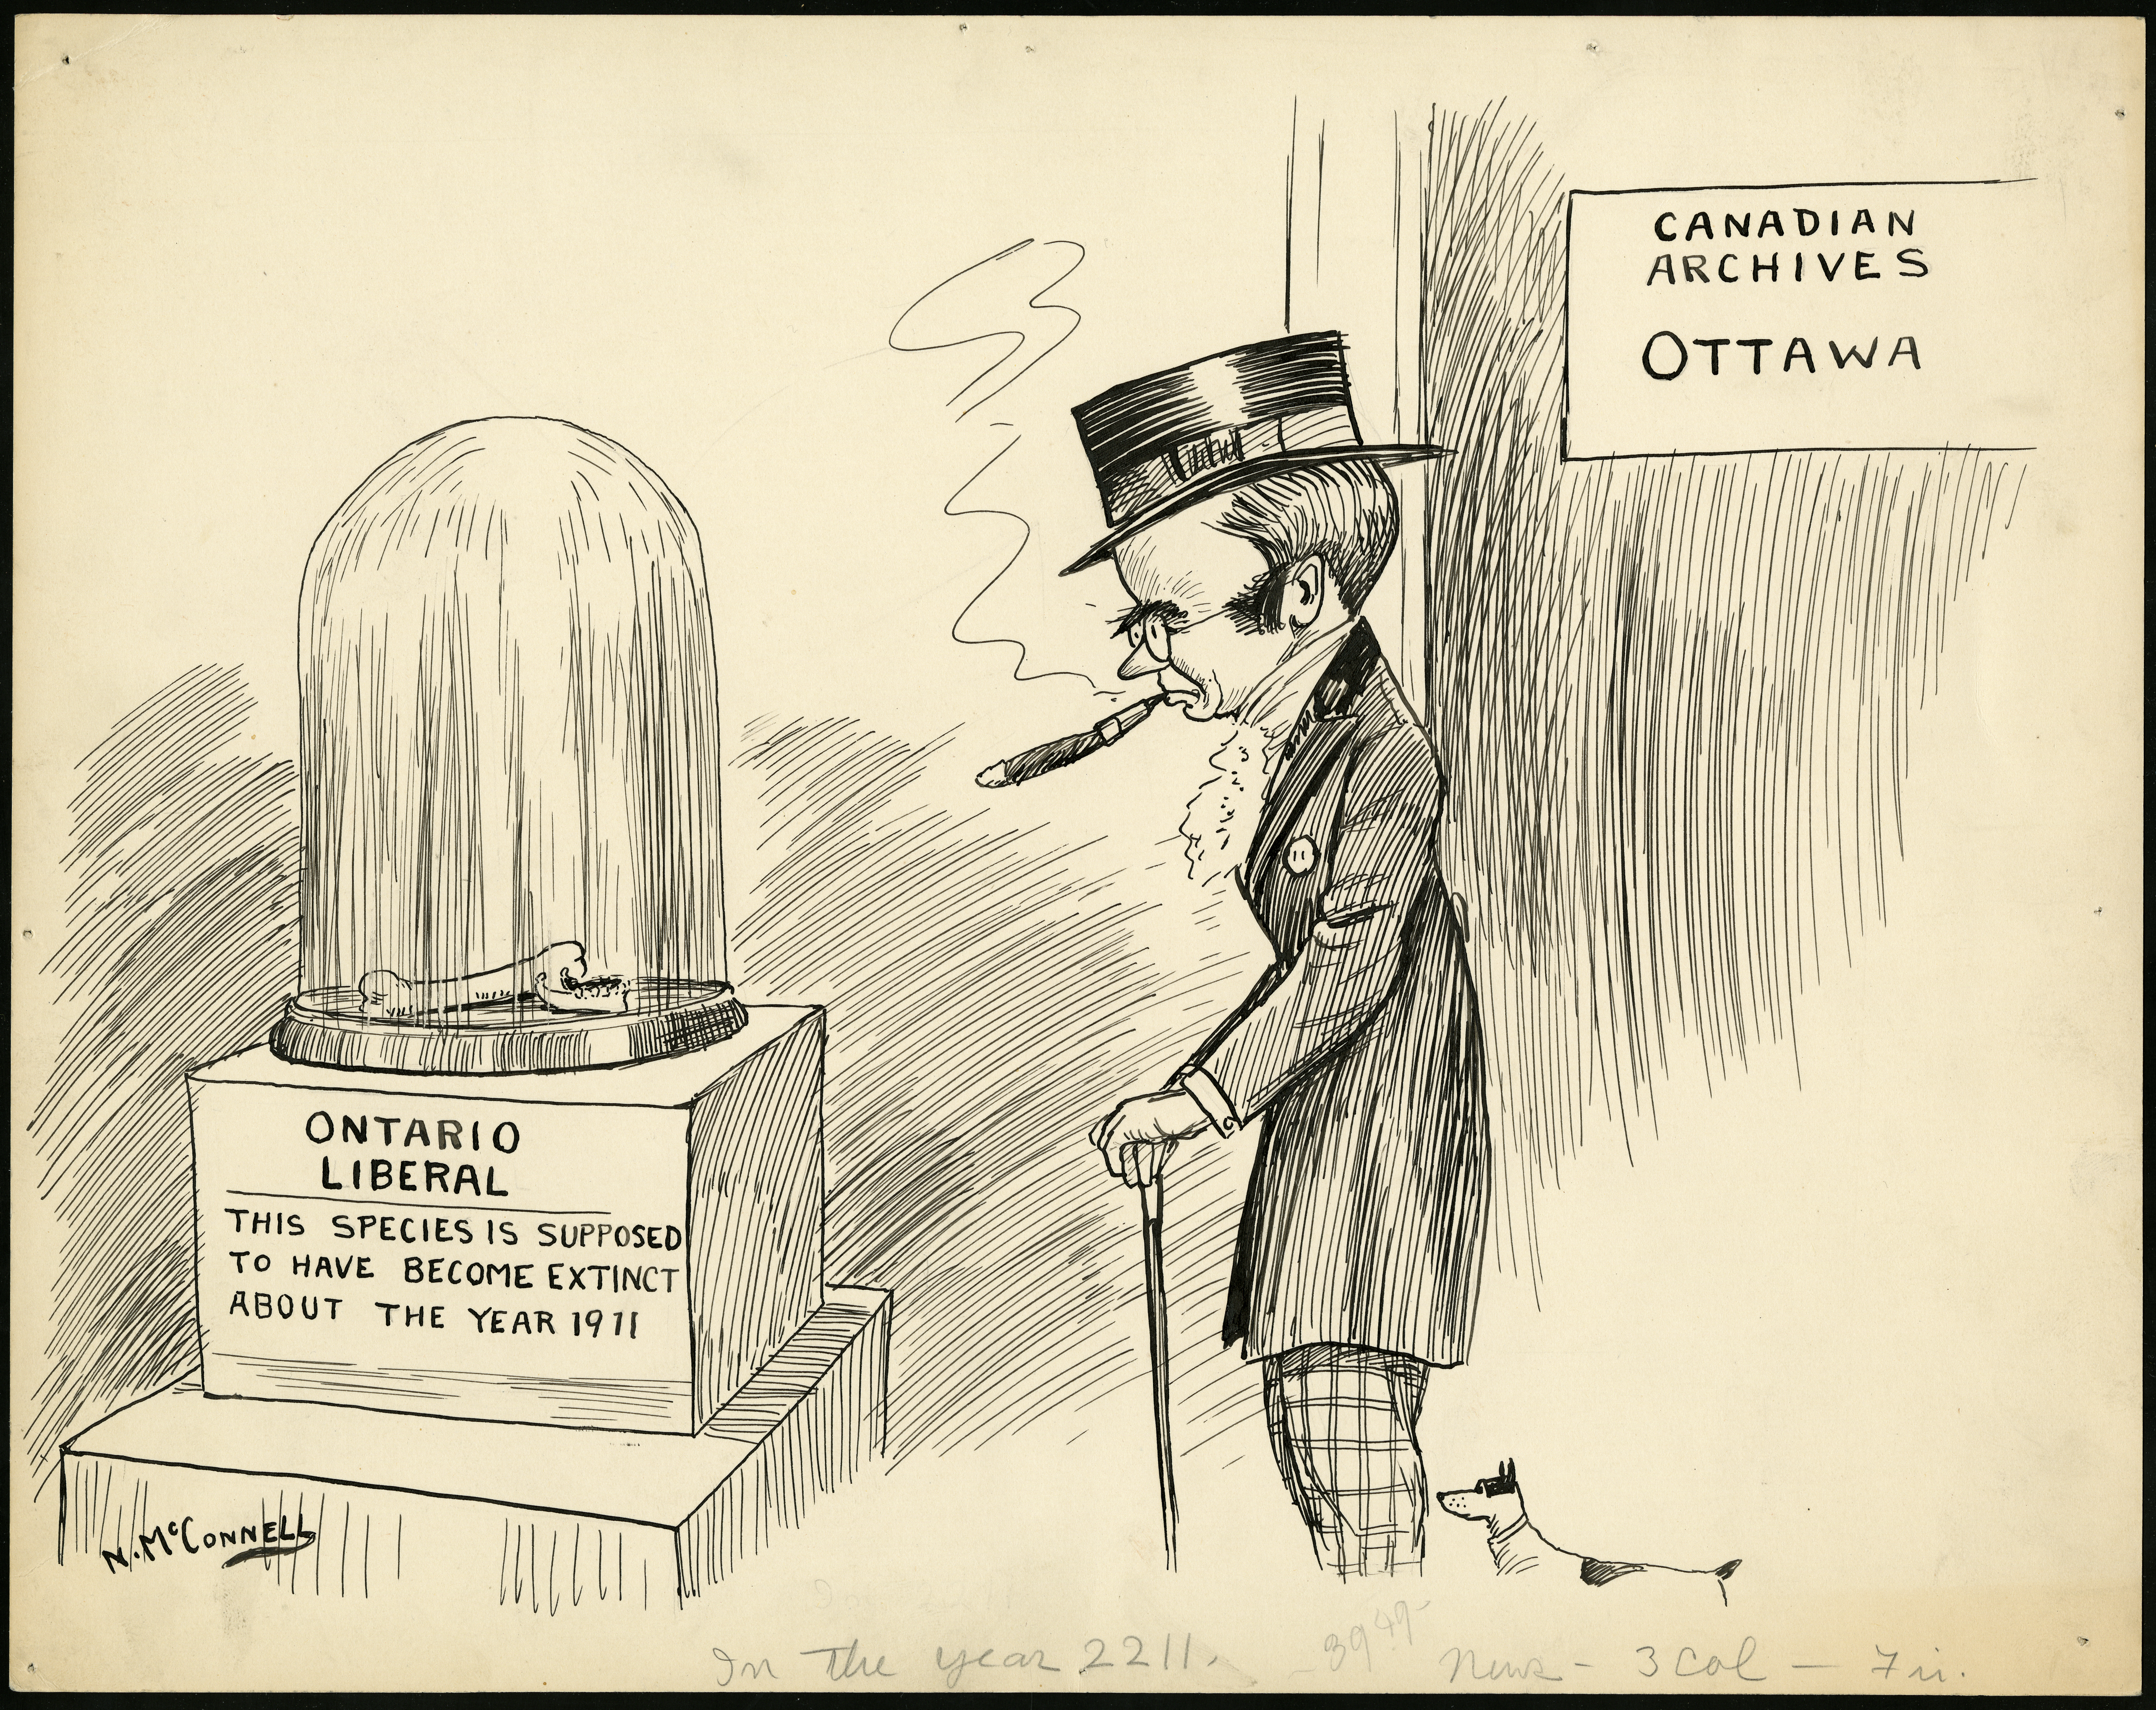 """A man looks at a pile of bones in a display case. In the Canadian Archives in Ottawa, a man wearing a suit, an ascot, and top hat holds a cane and smokes a cigar. He looks onto a glass domed display case with a pair of bones inside. The case is labeled """"ONTARIO LIBERAL"""" THIS SPECIES IS SUPPOSED TO HAVE BECOME EXTINCT ABOUT THE YEAR 1911"""""""